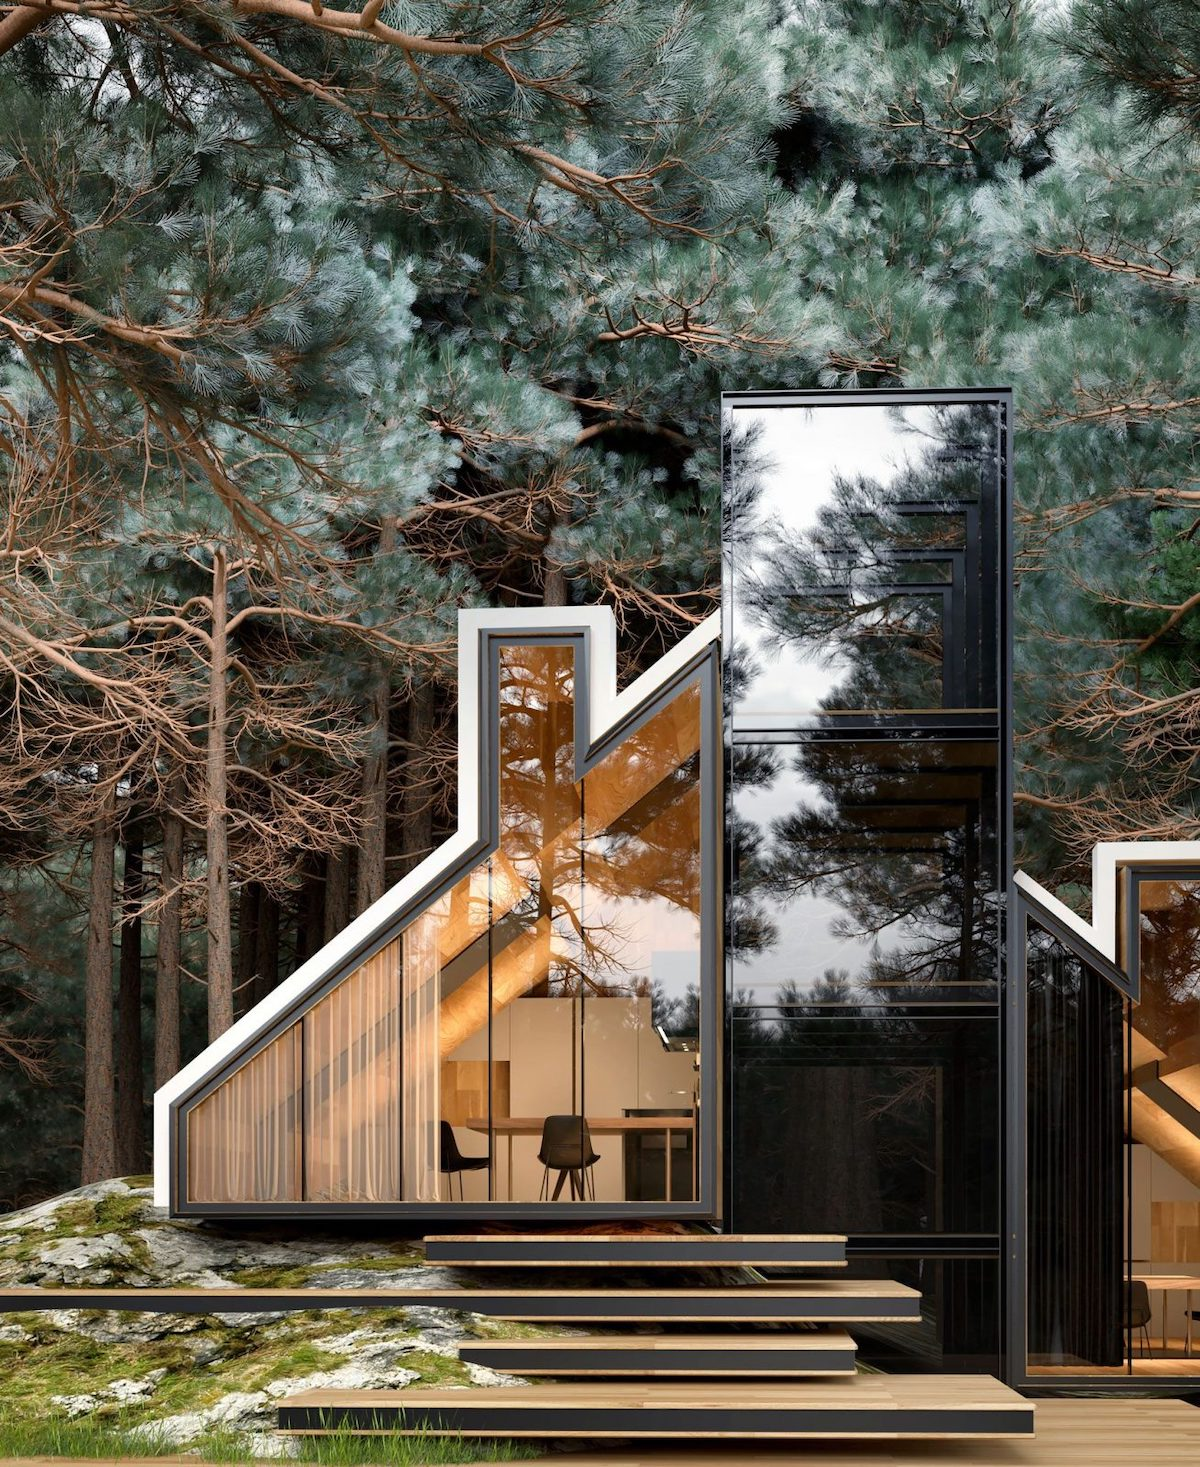 Architect Creates Playful House-Shaped House in Secluded Forest